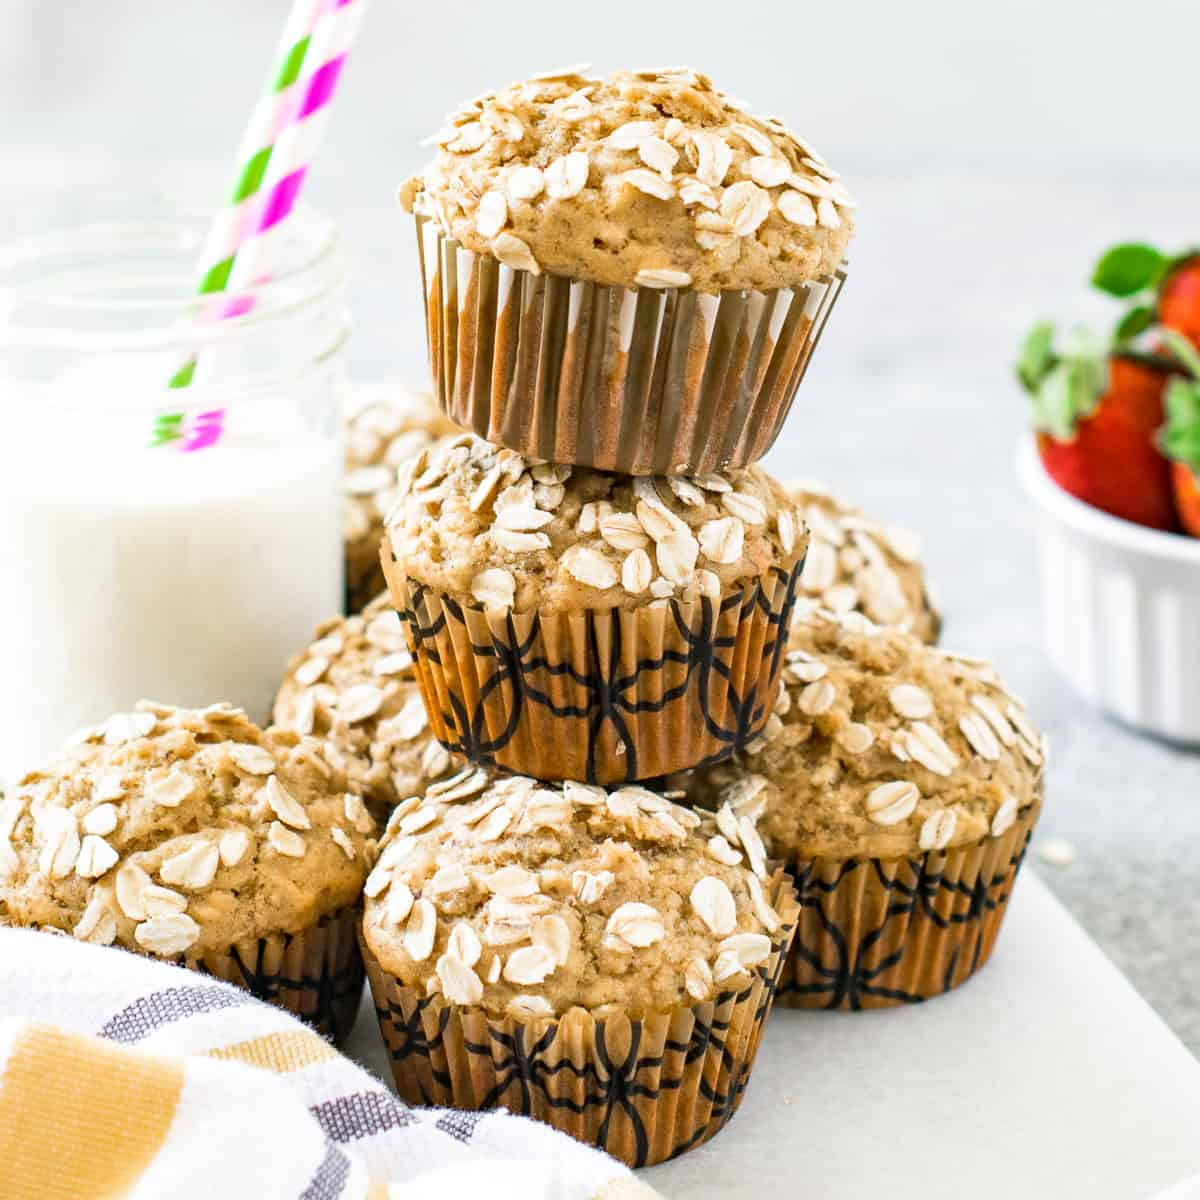 Vegan banana oatmeal muffins stacked together and served besides milk.